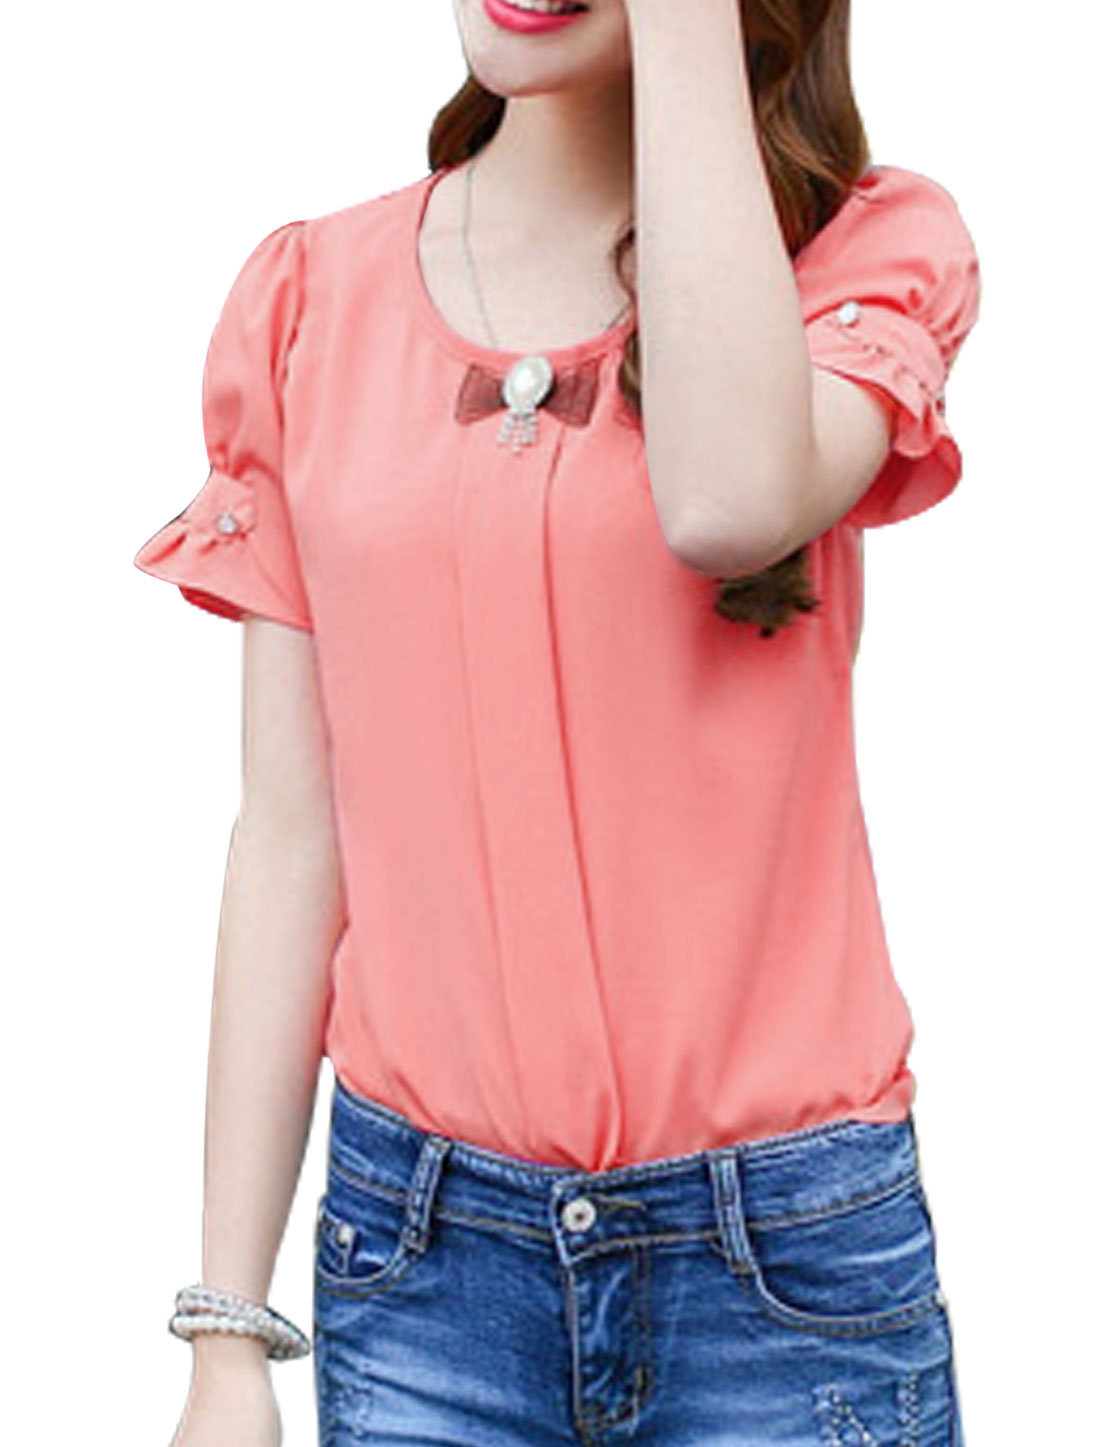 Woman Round Neck Short Sleeves Well-fitting Leisure Top w Brooch Watermelon Red XS